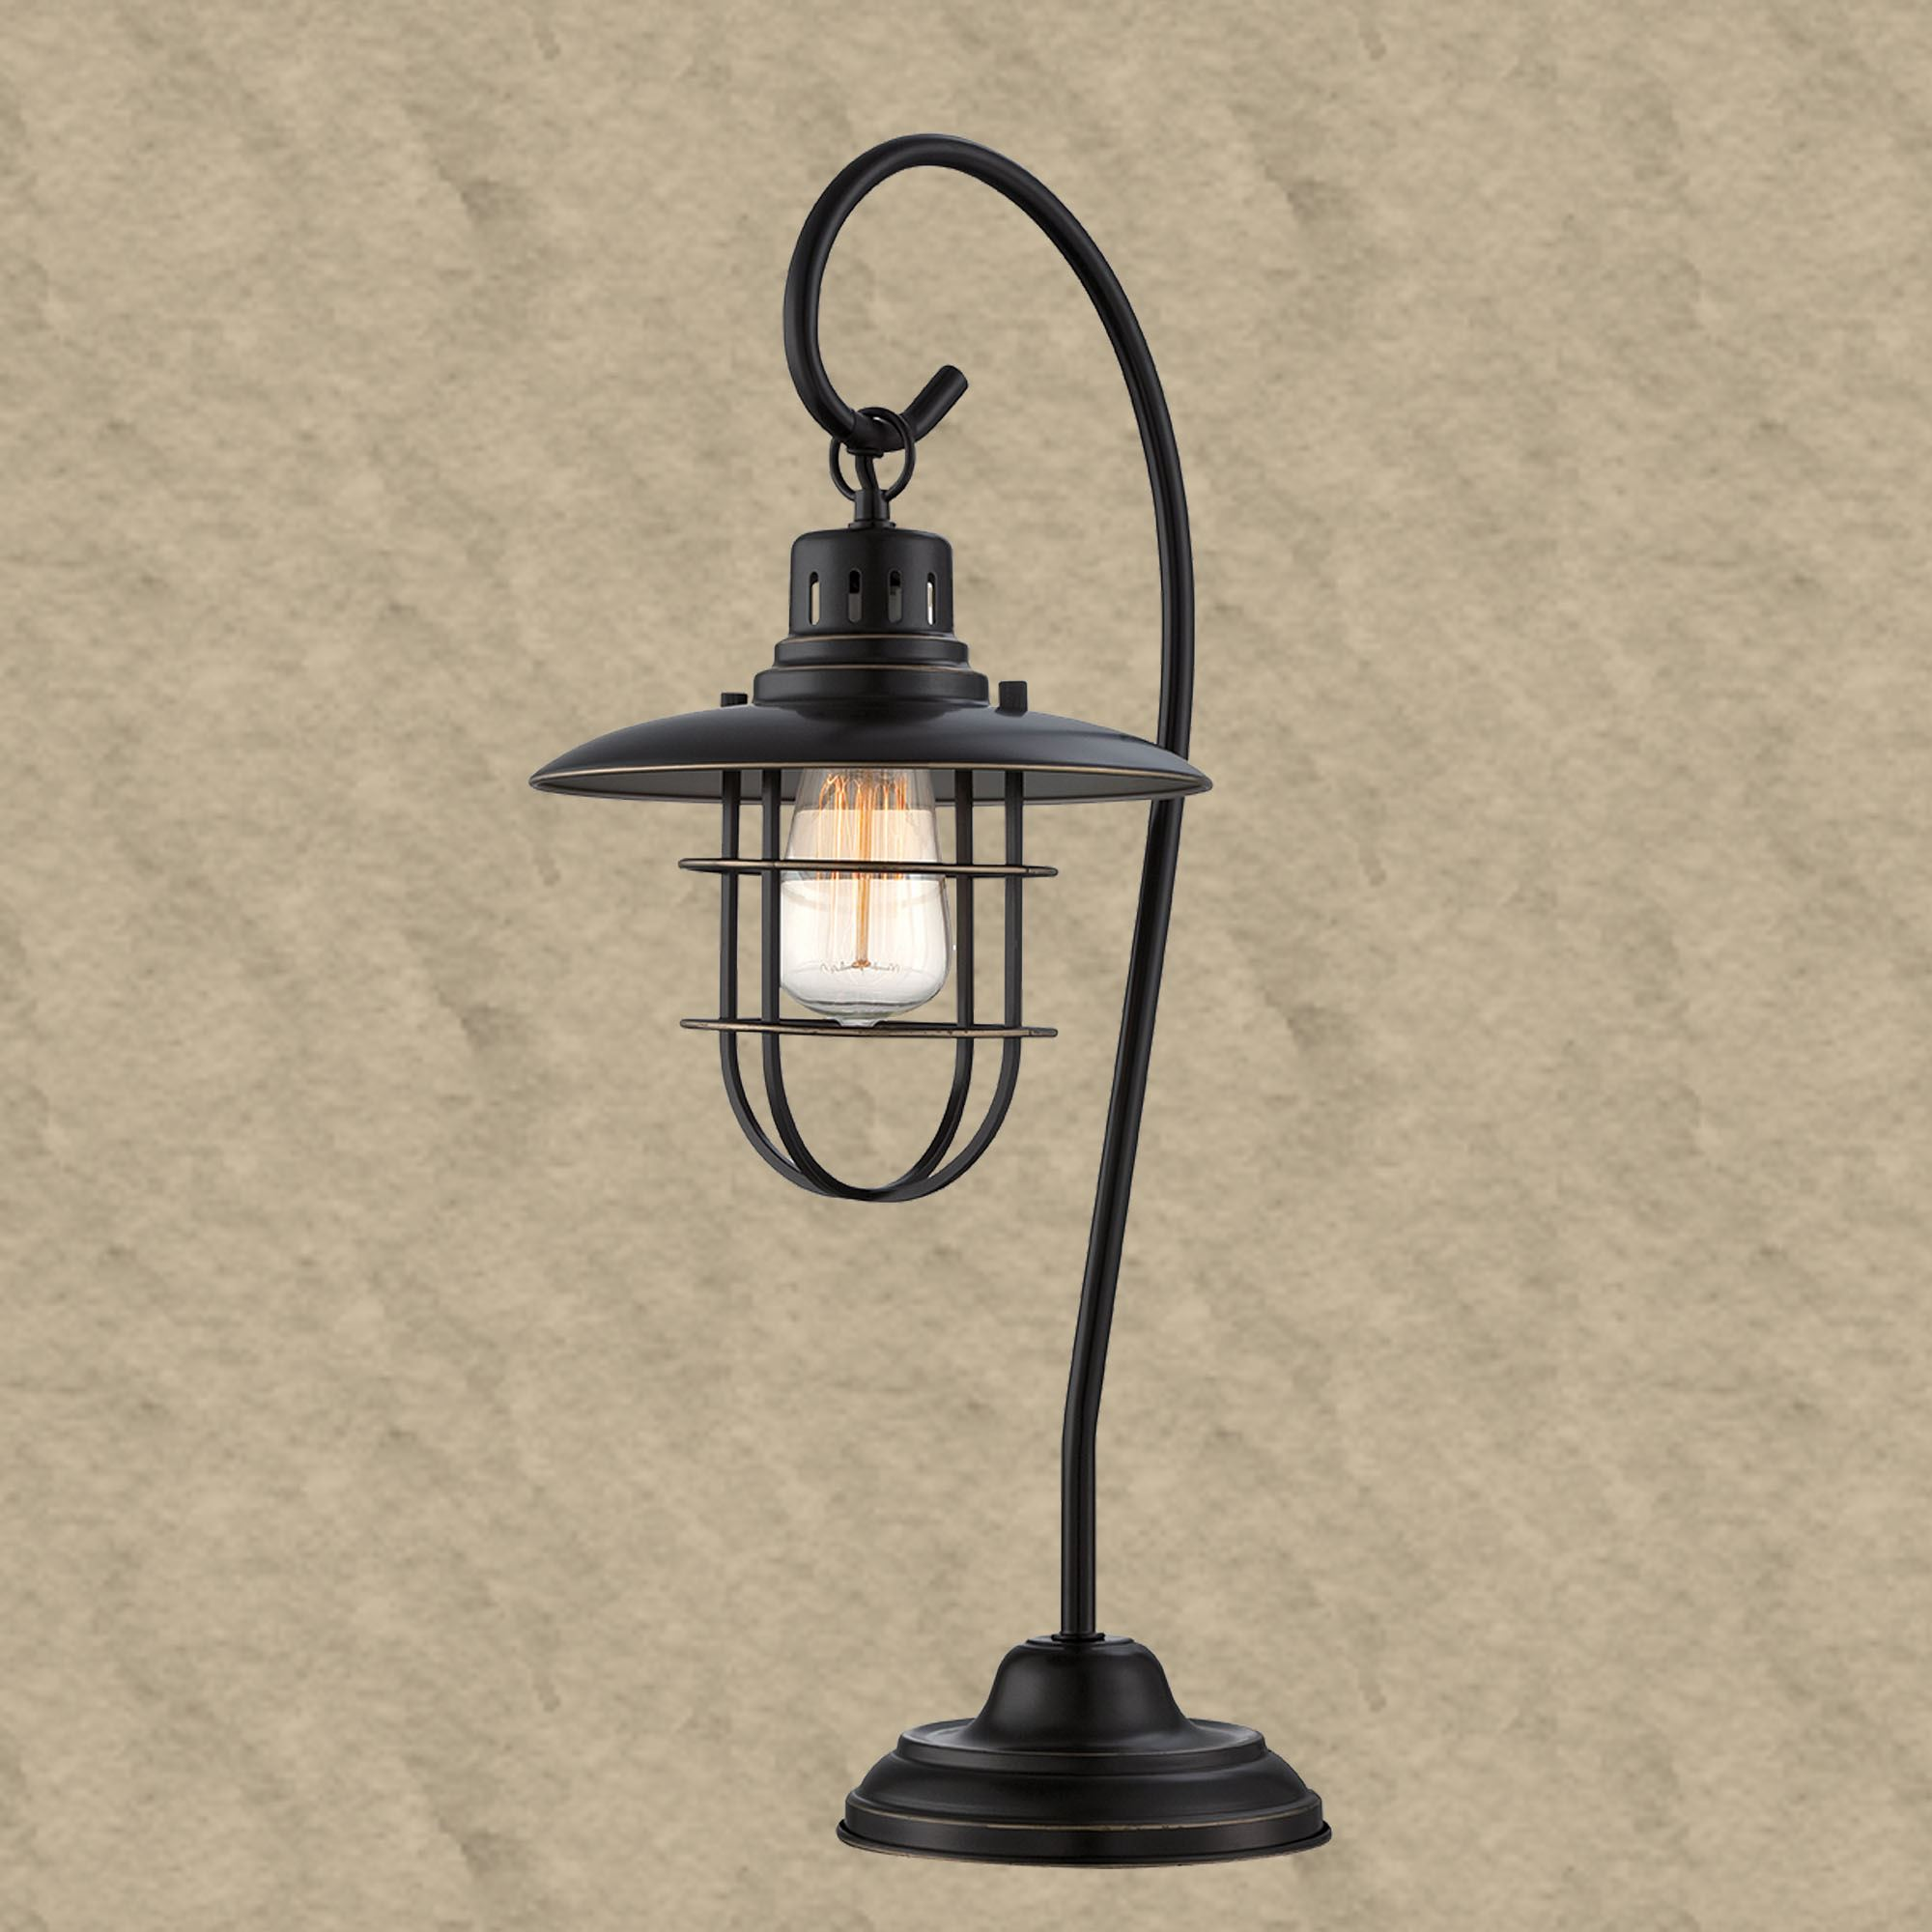 Digby lantern style metal table lamp touch to zoom aloadofball Gallery